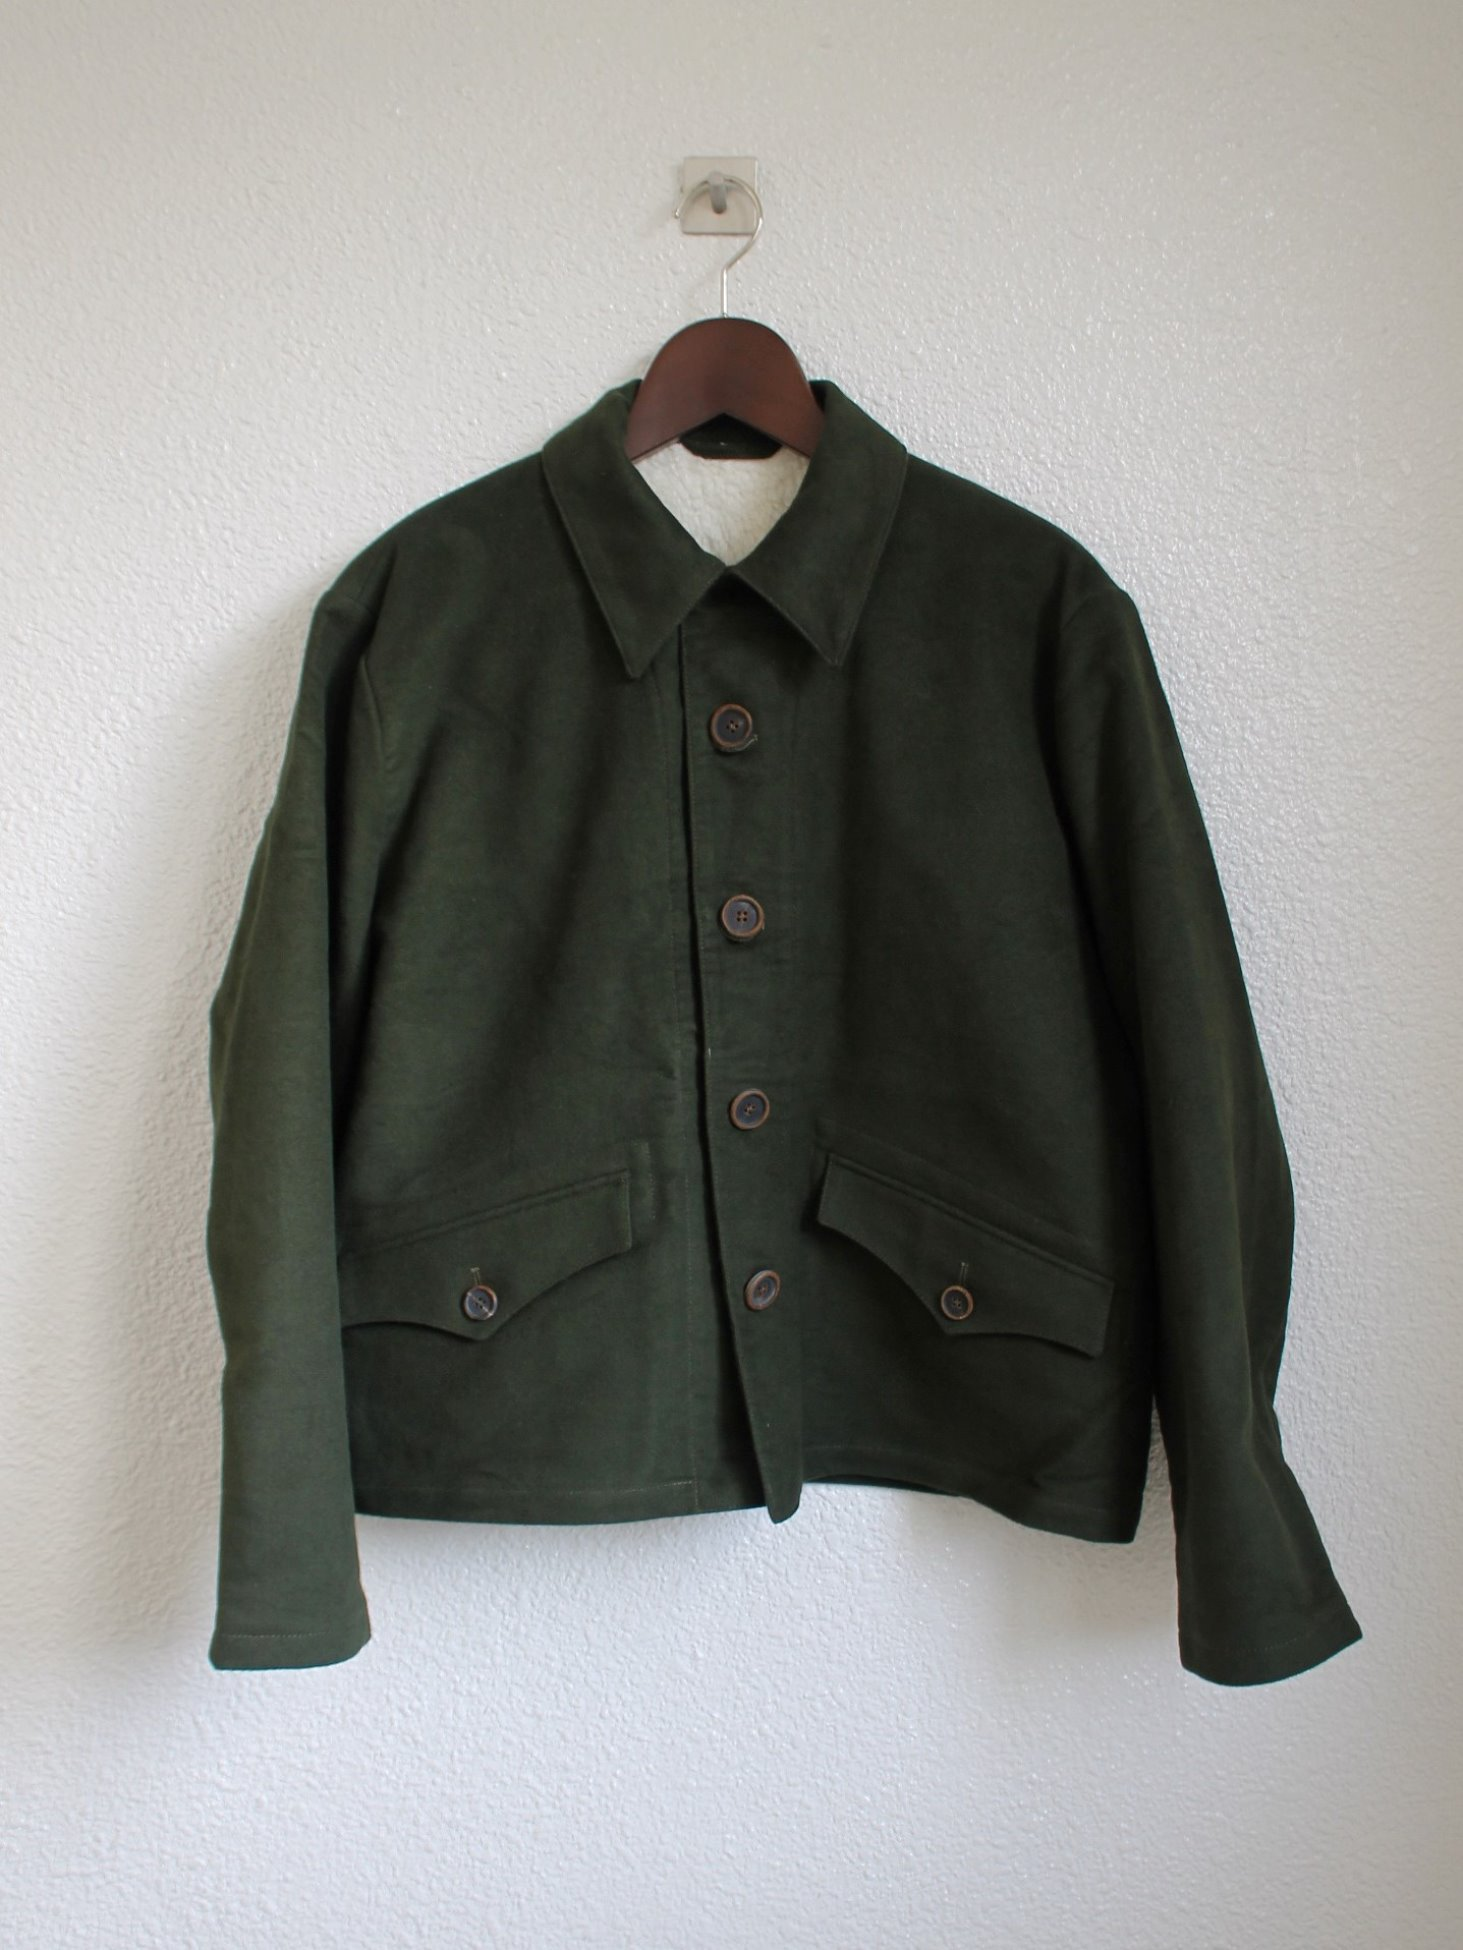 [An Irrational Element] Short Army Jacket - Olive Moleskin